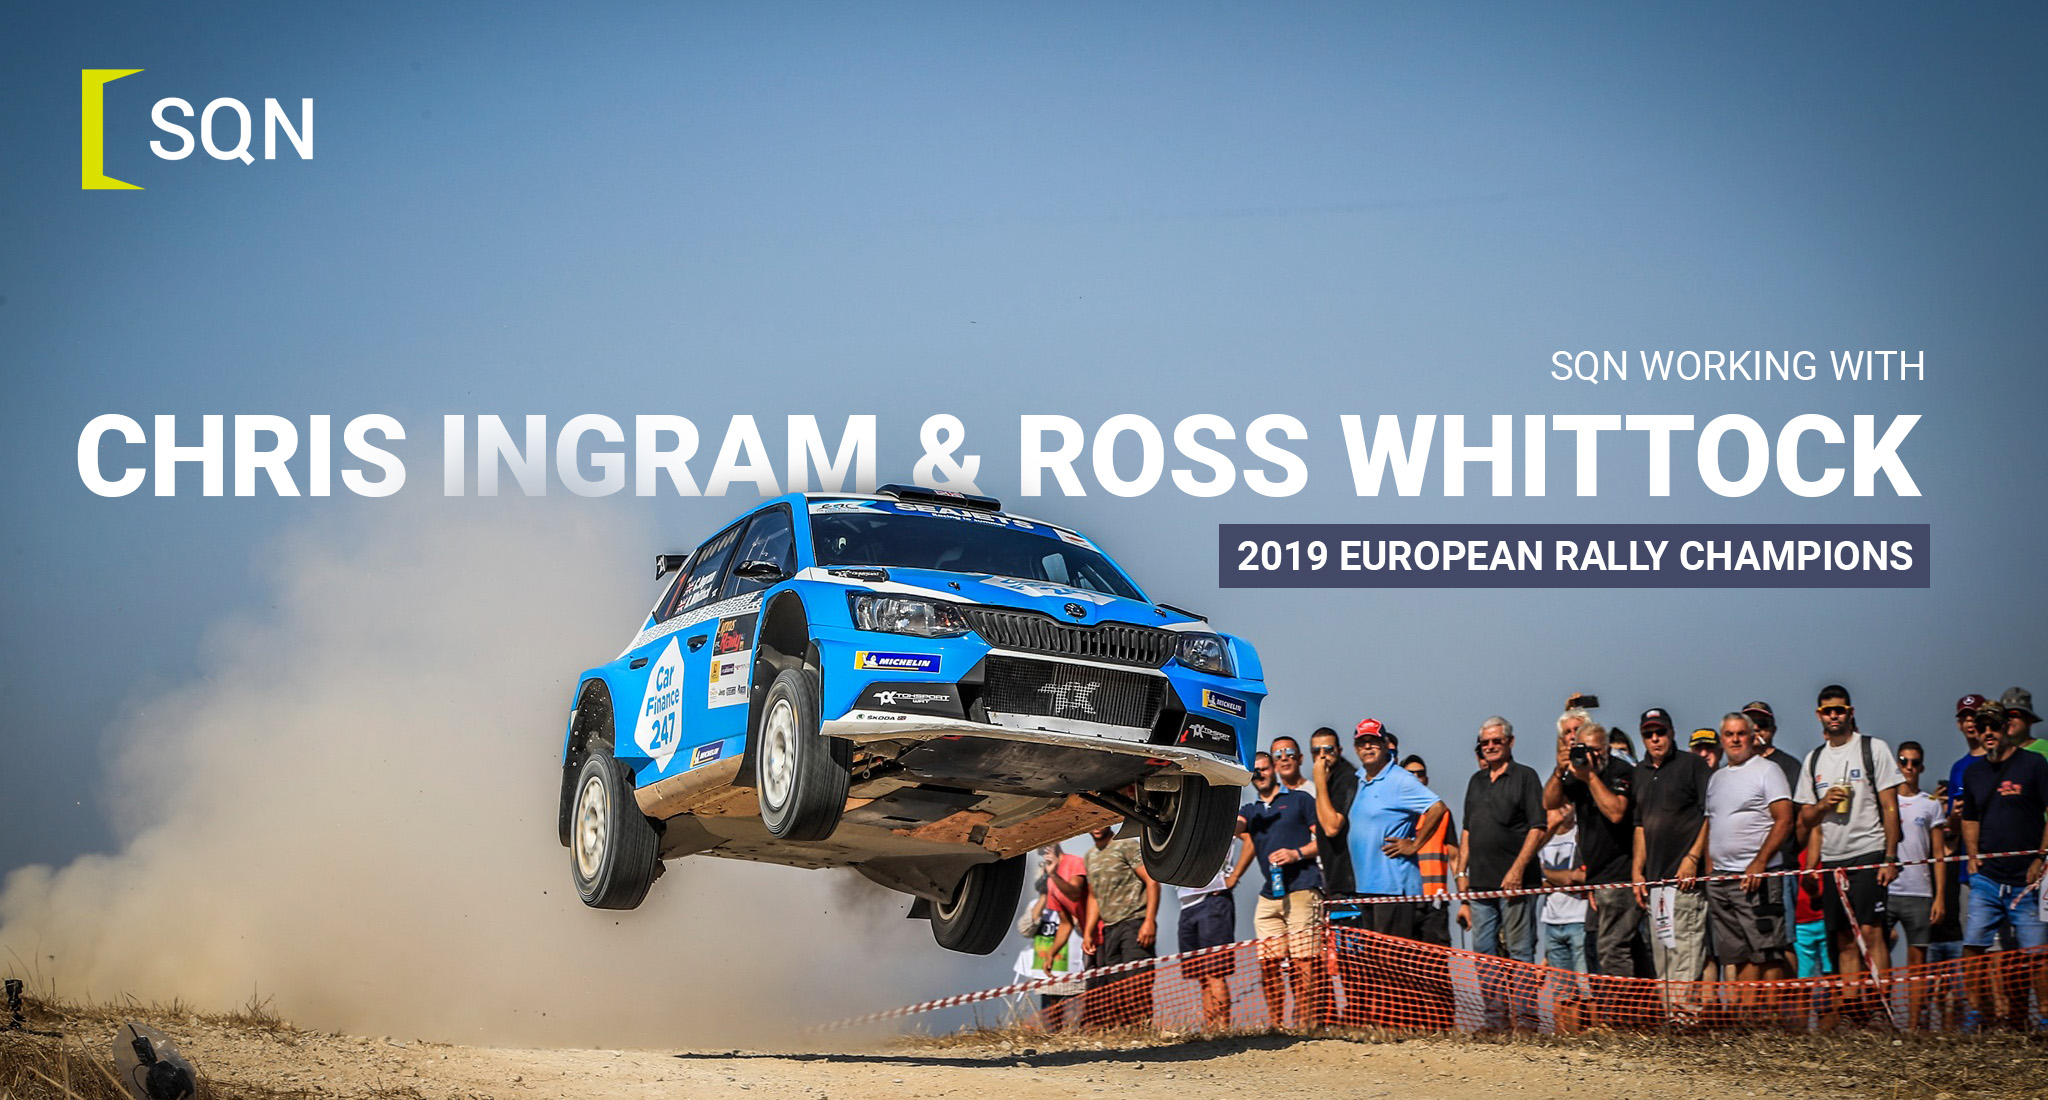 European Rally Champion Chris Ingram selects SQN to support career growth